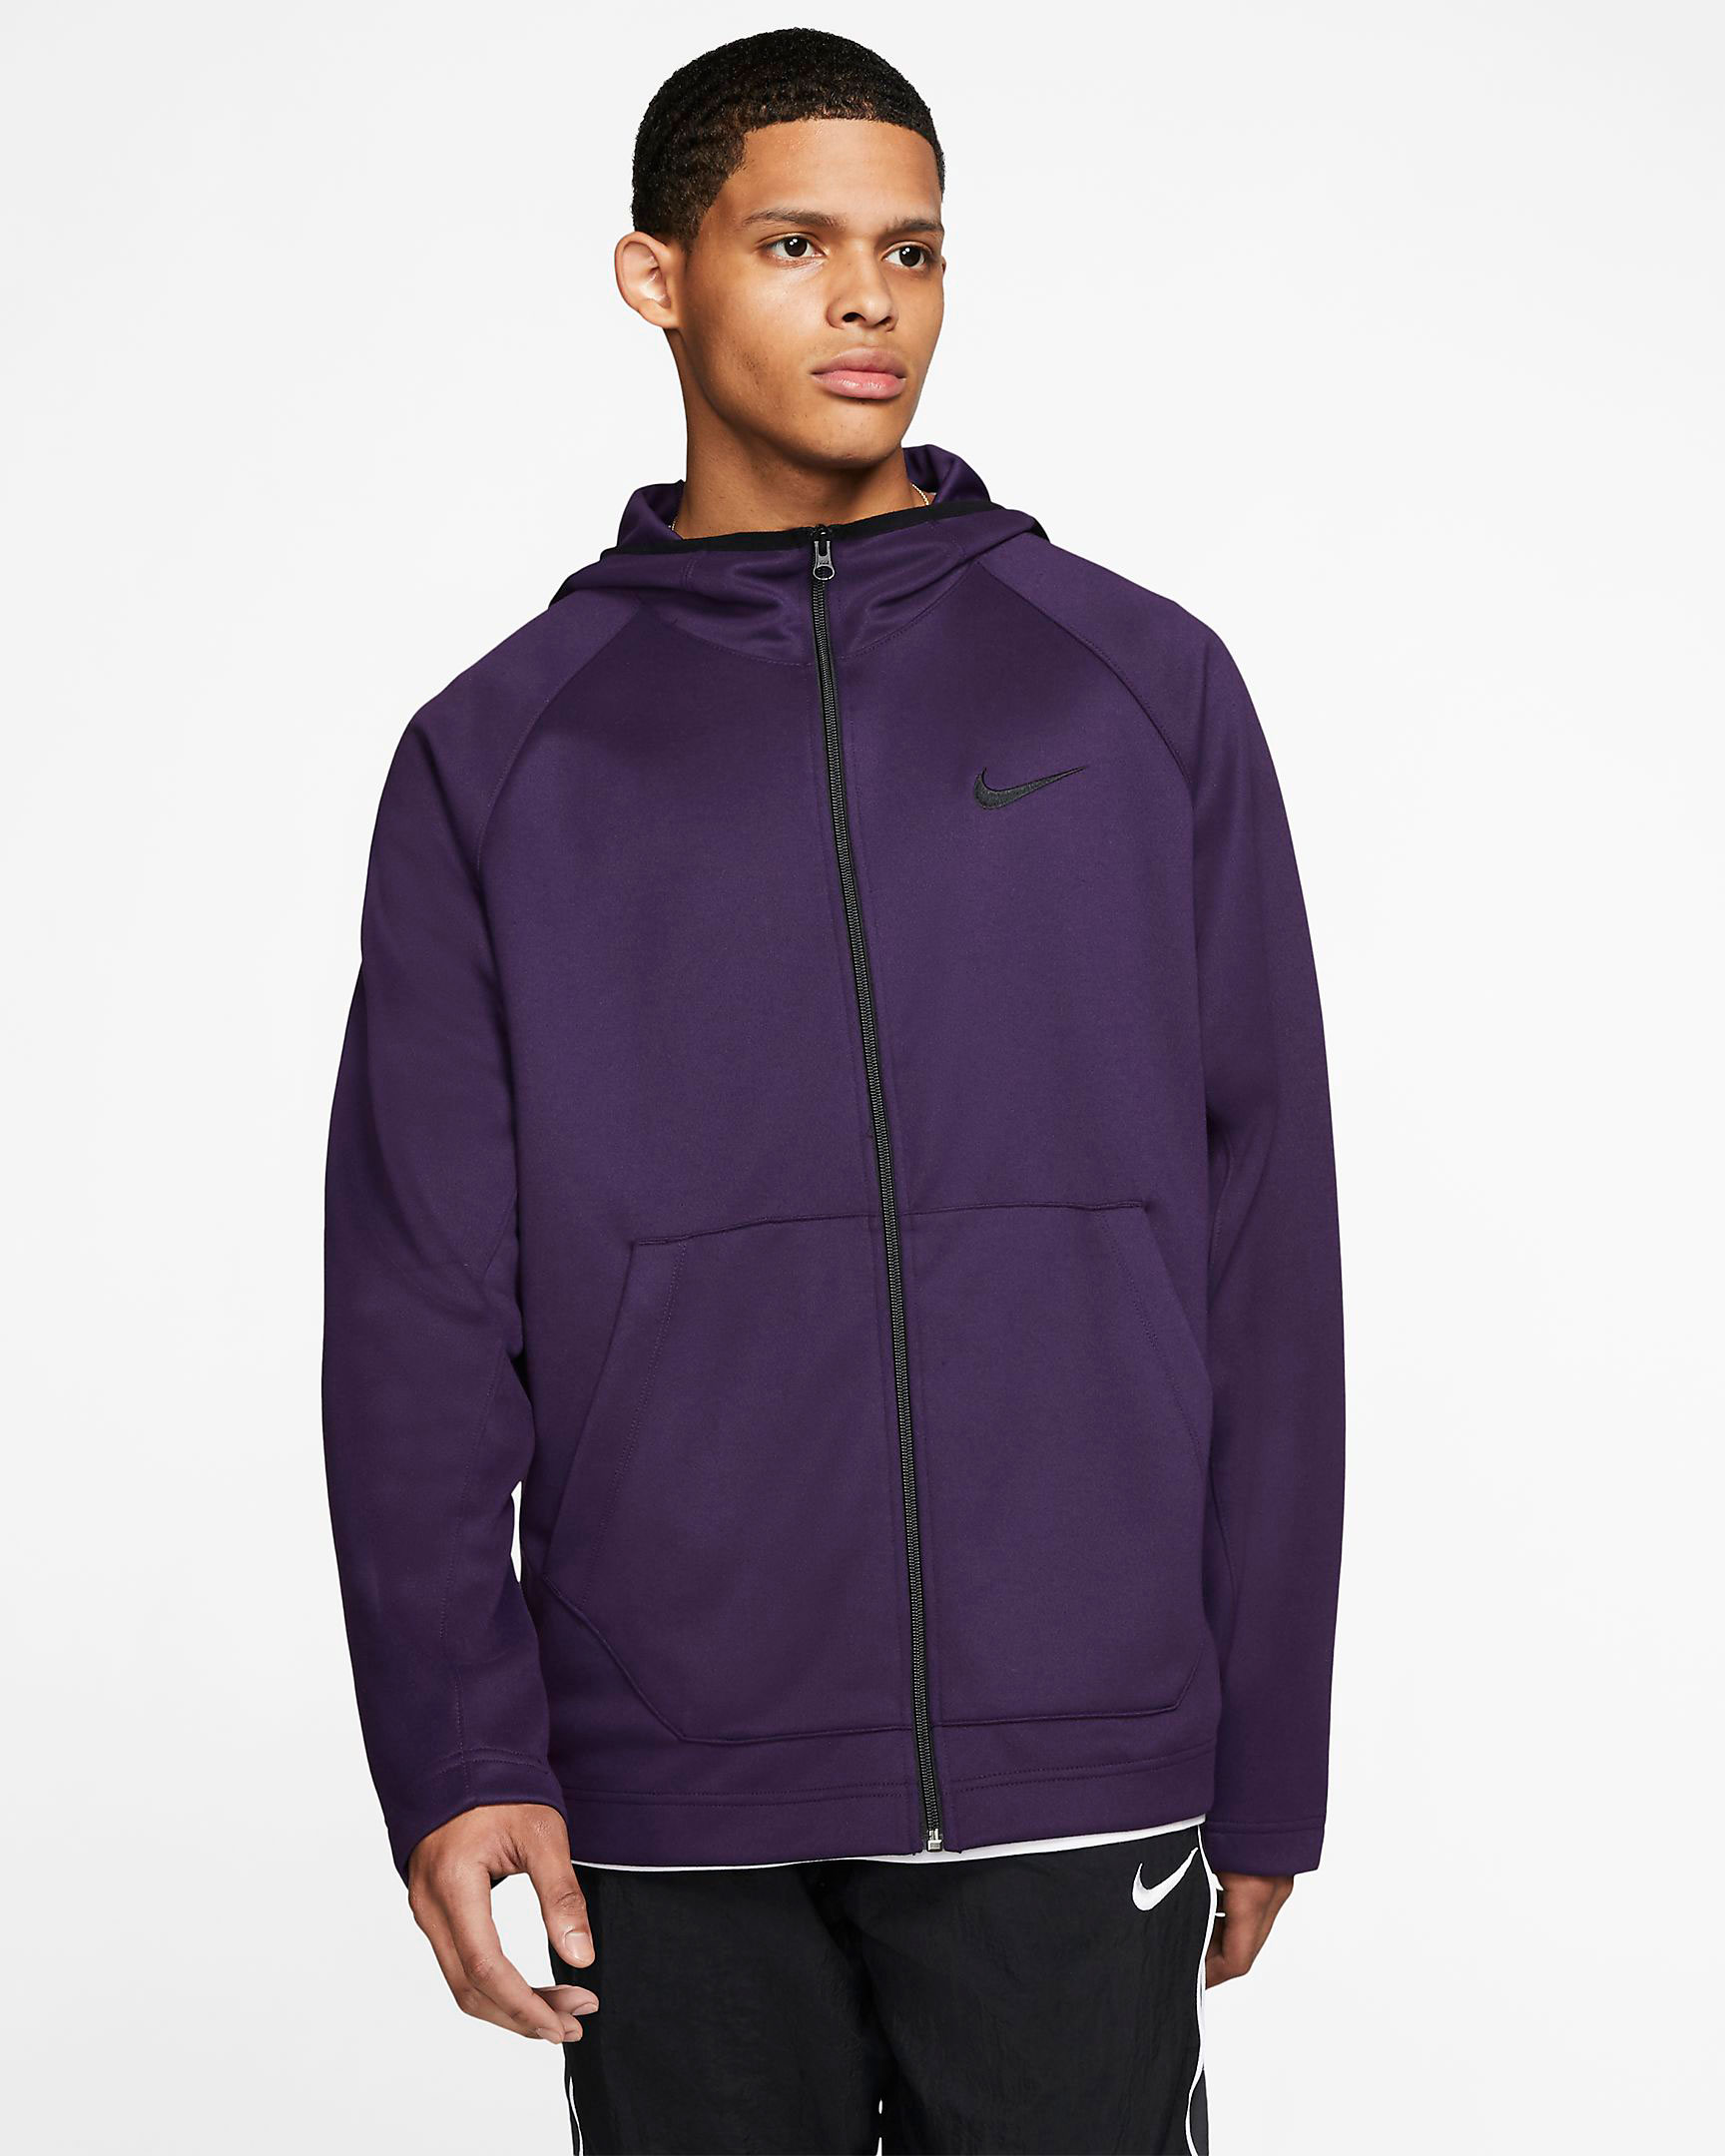 nike-basketball-grand-purple-zip-hoodie